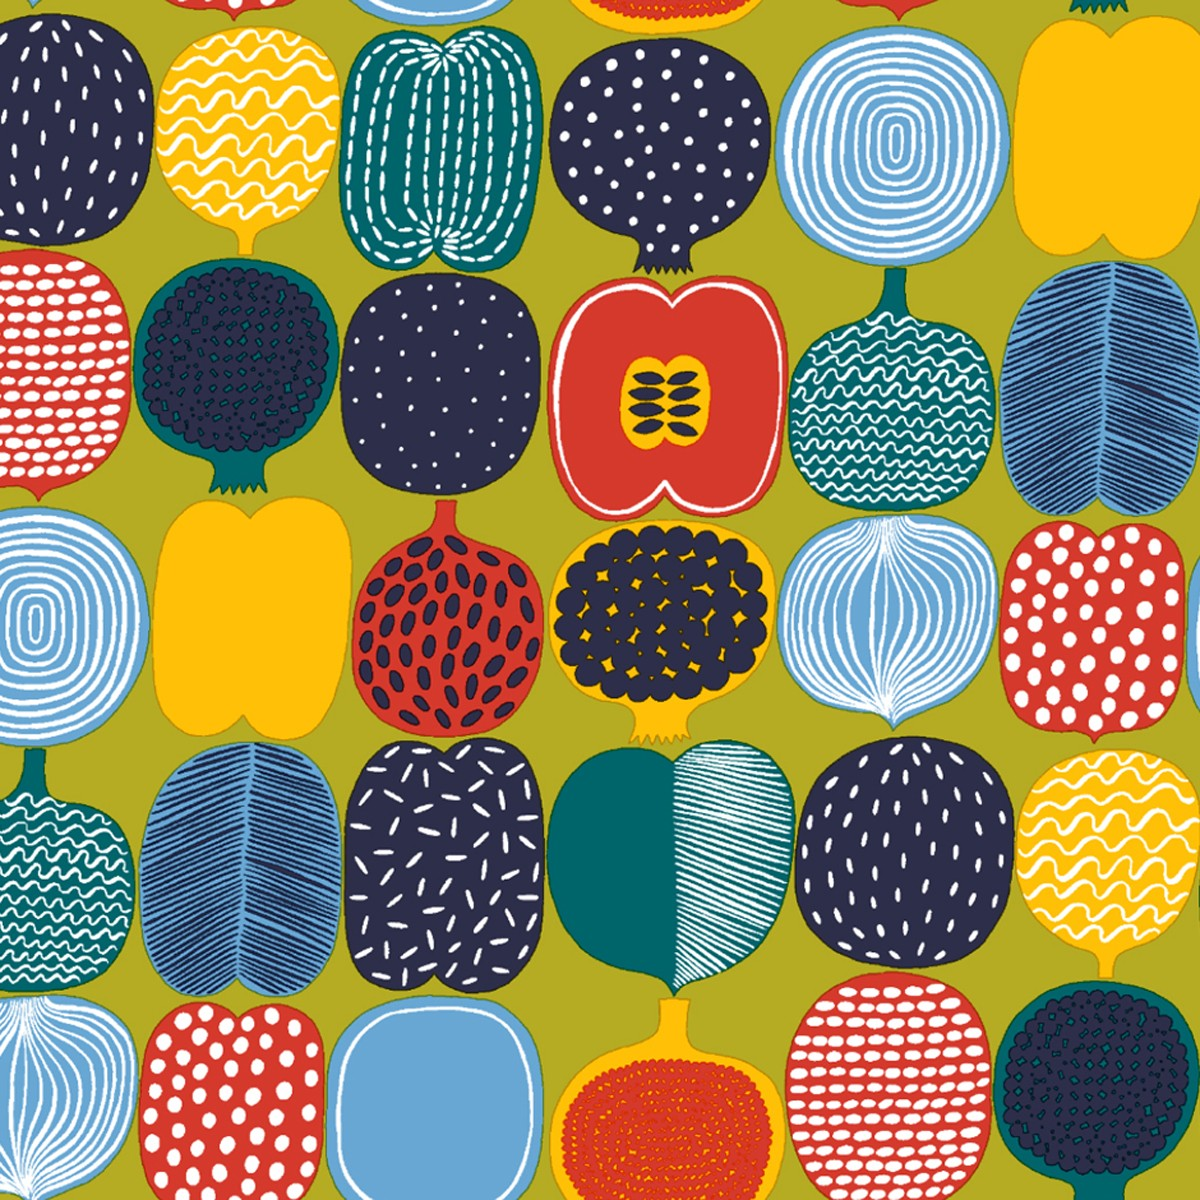 marimekko wallpaper collection wallpapersafari